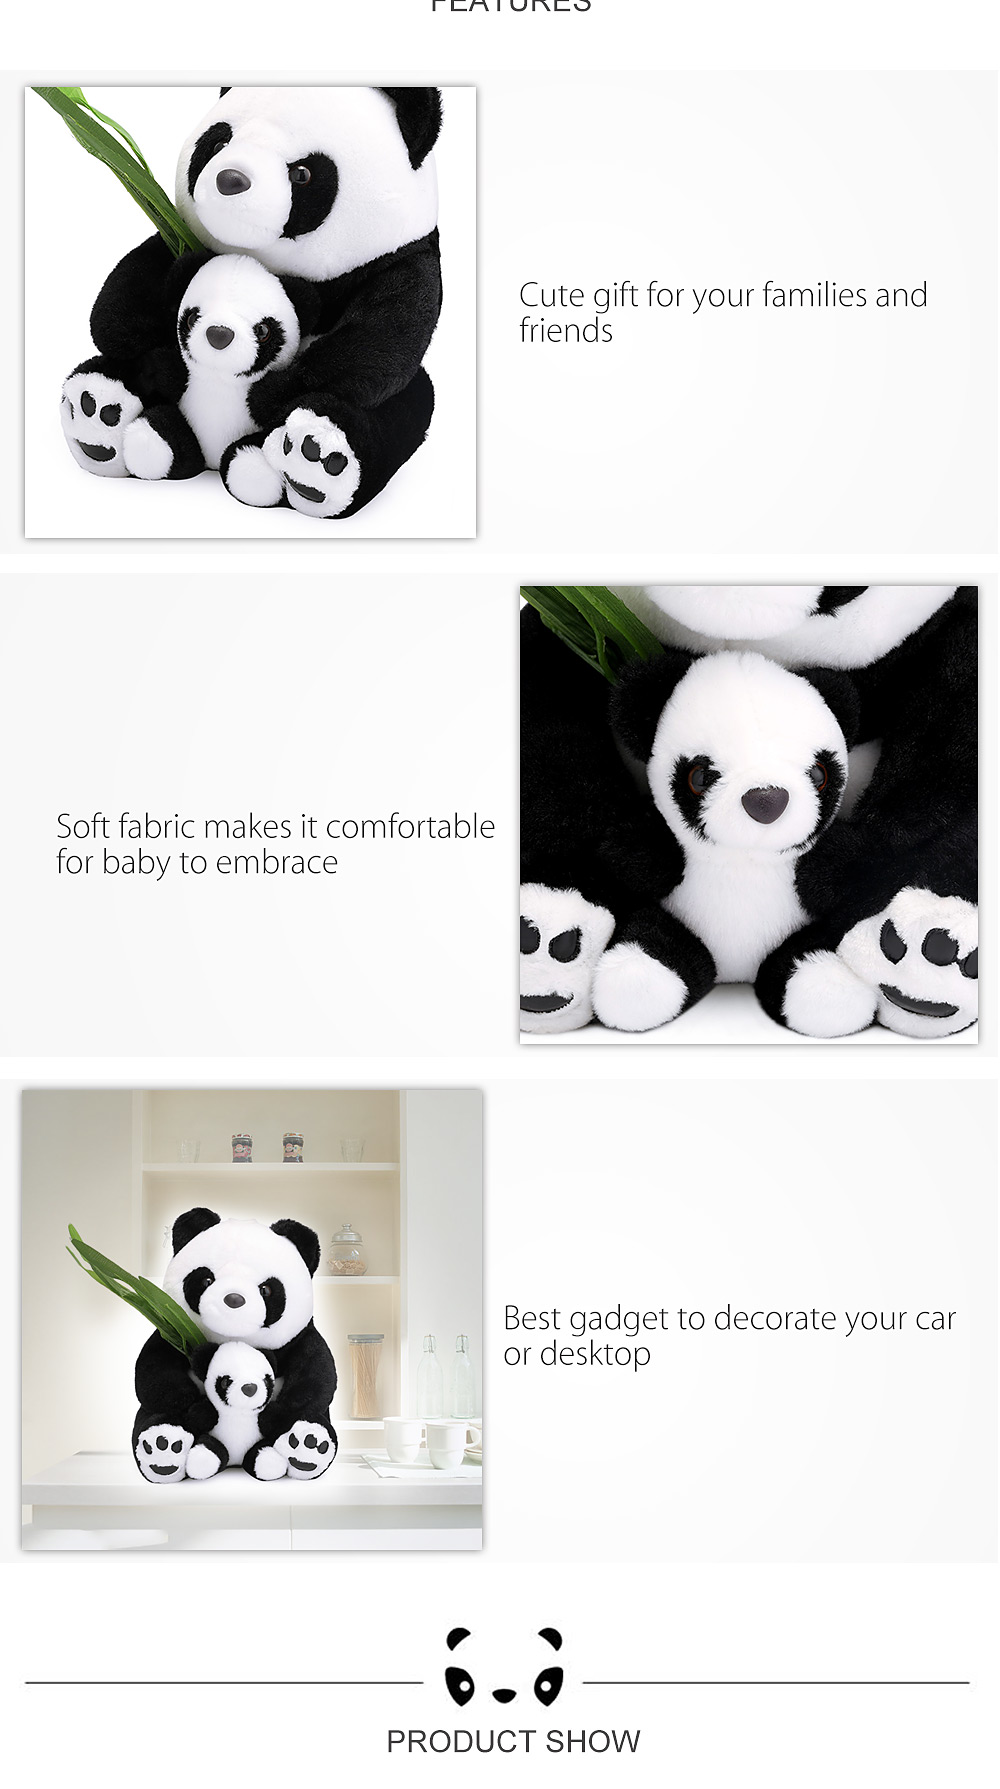 25cm Baby Stuffed Cute Mother-child Panda Plush Doll Toy Birthday Christmas Gift